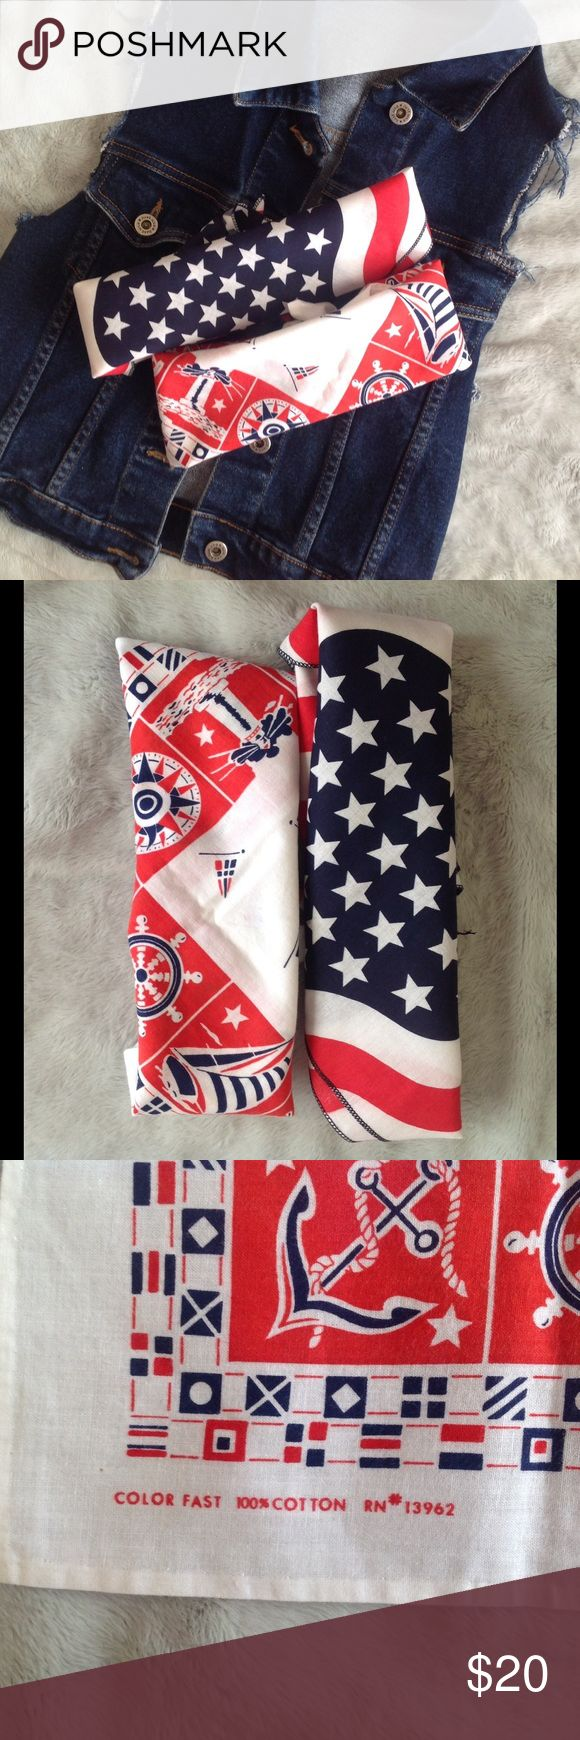 Vintage Americana Festival Bandana Bundle Gorgeous vintage bandana bundle, including an American flag print and a nautical print. Not Urban Outfitters (listed for exposure). Wear as scarf, headband, choker, bracelet or whatever you're in the mood for. Harry Styles photo added for ultimate style inspiration. Perfect for Coachella or other summer music festivals. Urban Outfitters Accessories Scarves & Wraps